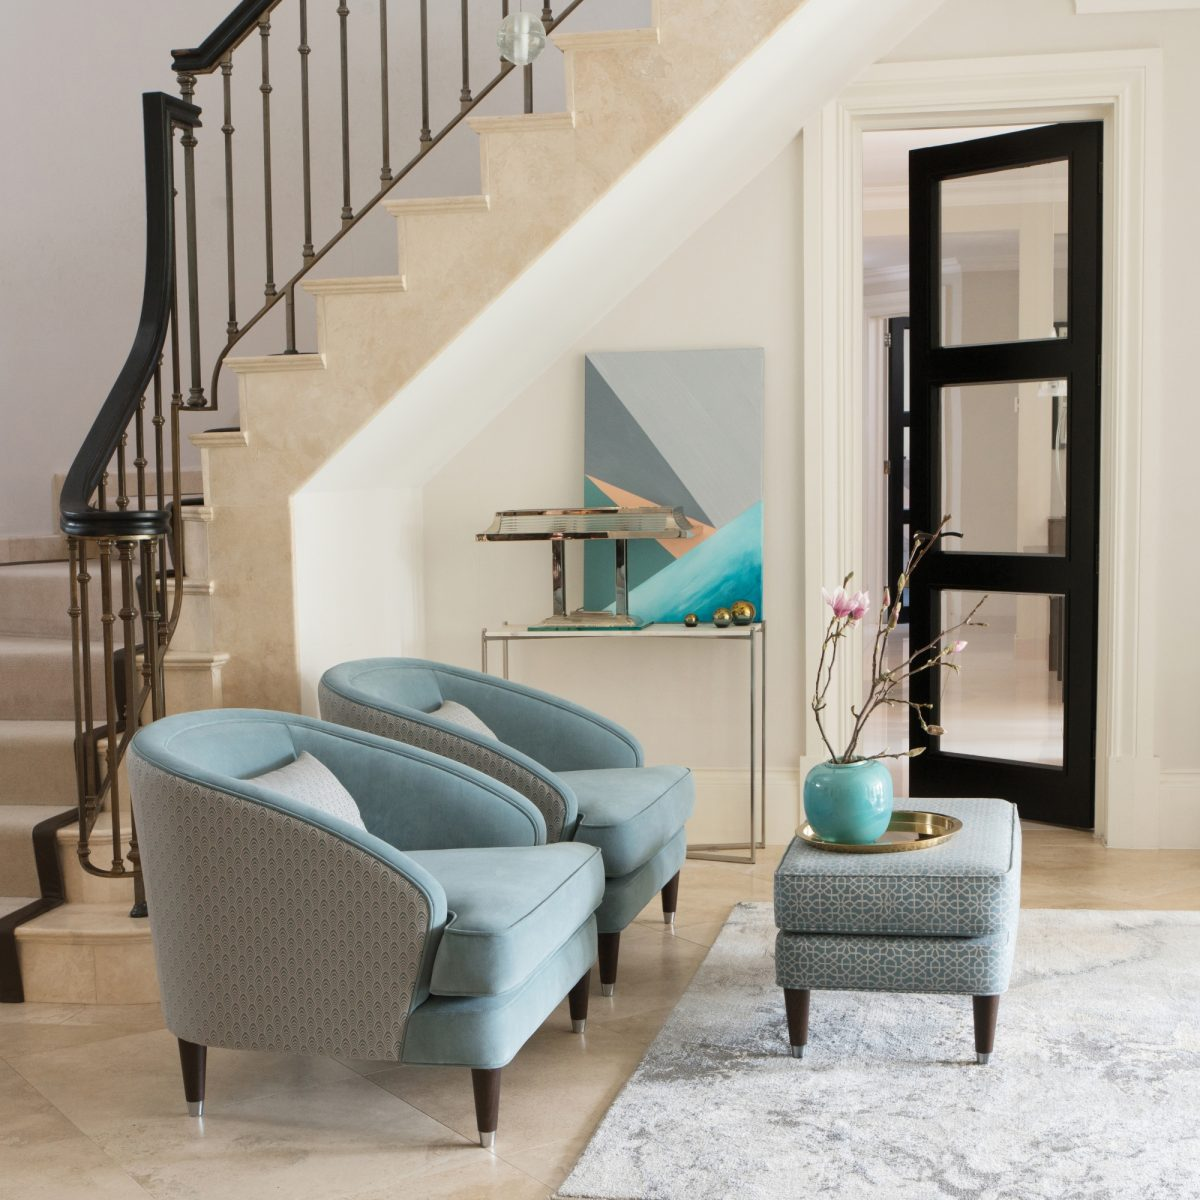 Fitzroy Chair in Bracklyn Teal and Blomfield Teal Fitzroy Footstool in Hampstead Teal